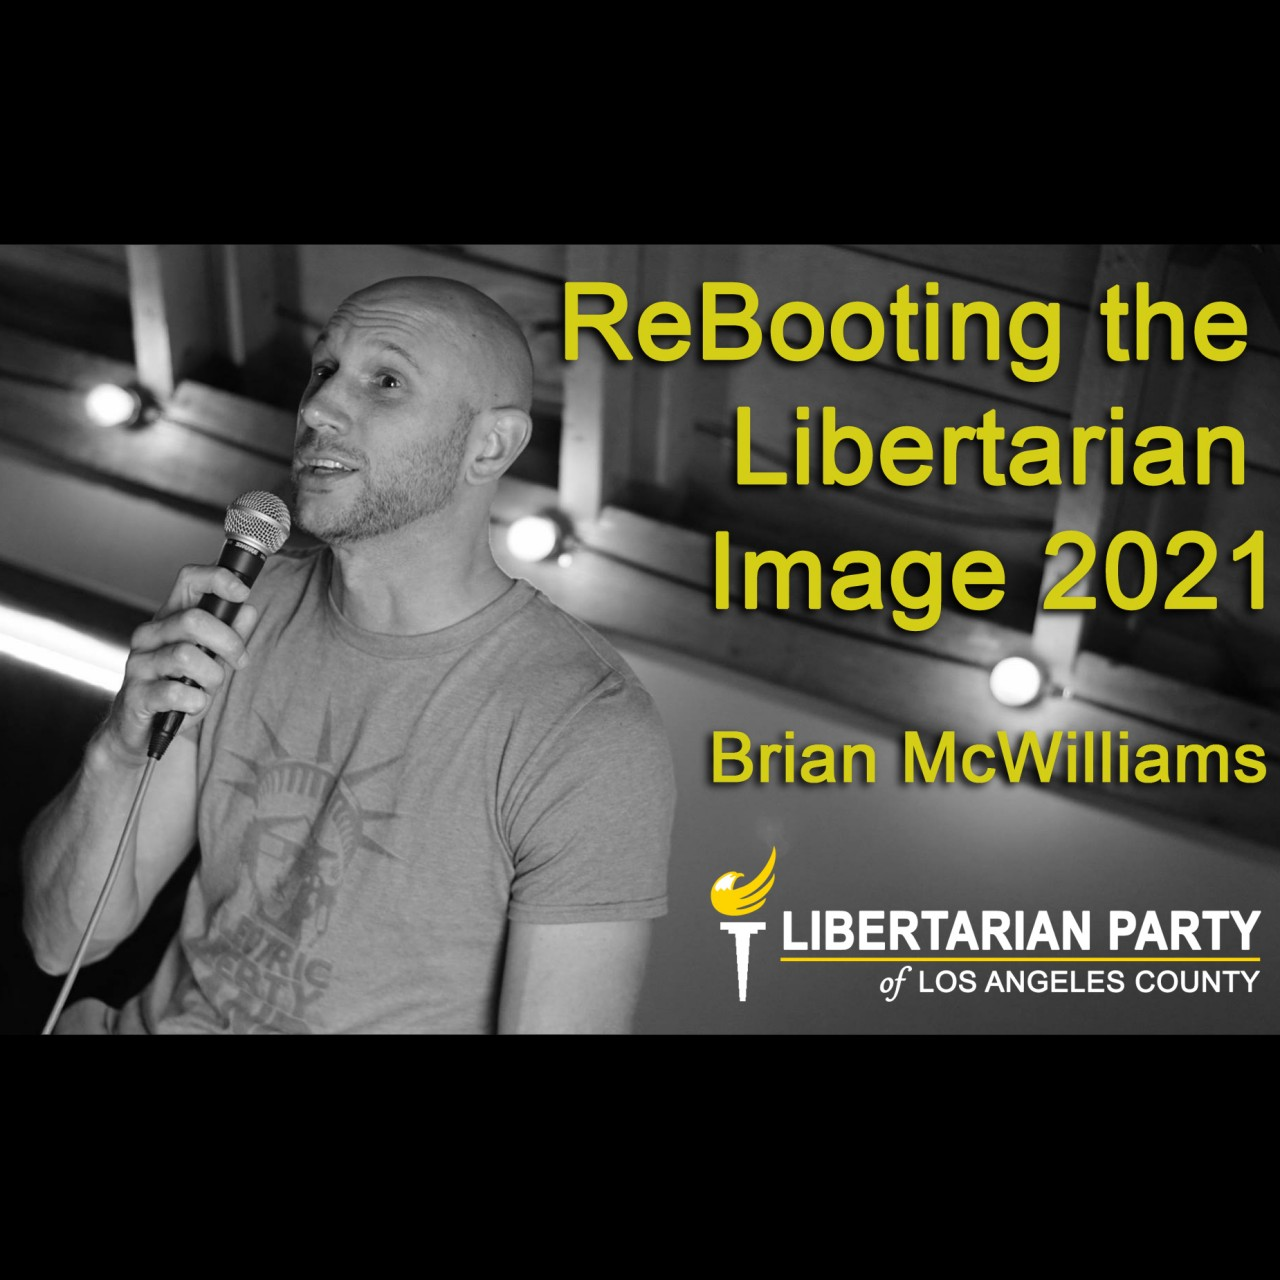 Region 67 January 21, 2021 Meetup with Brian McWilliams